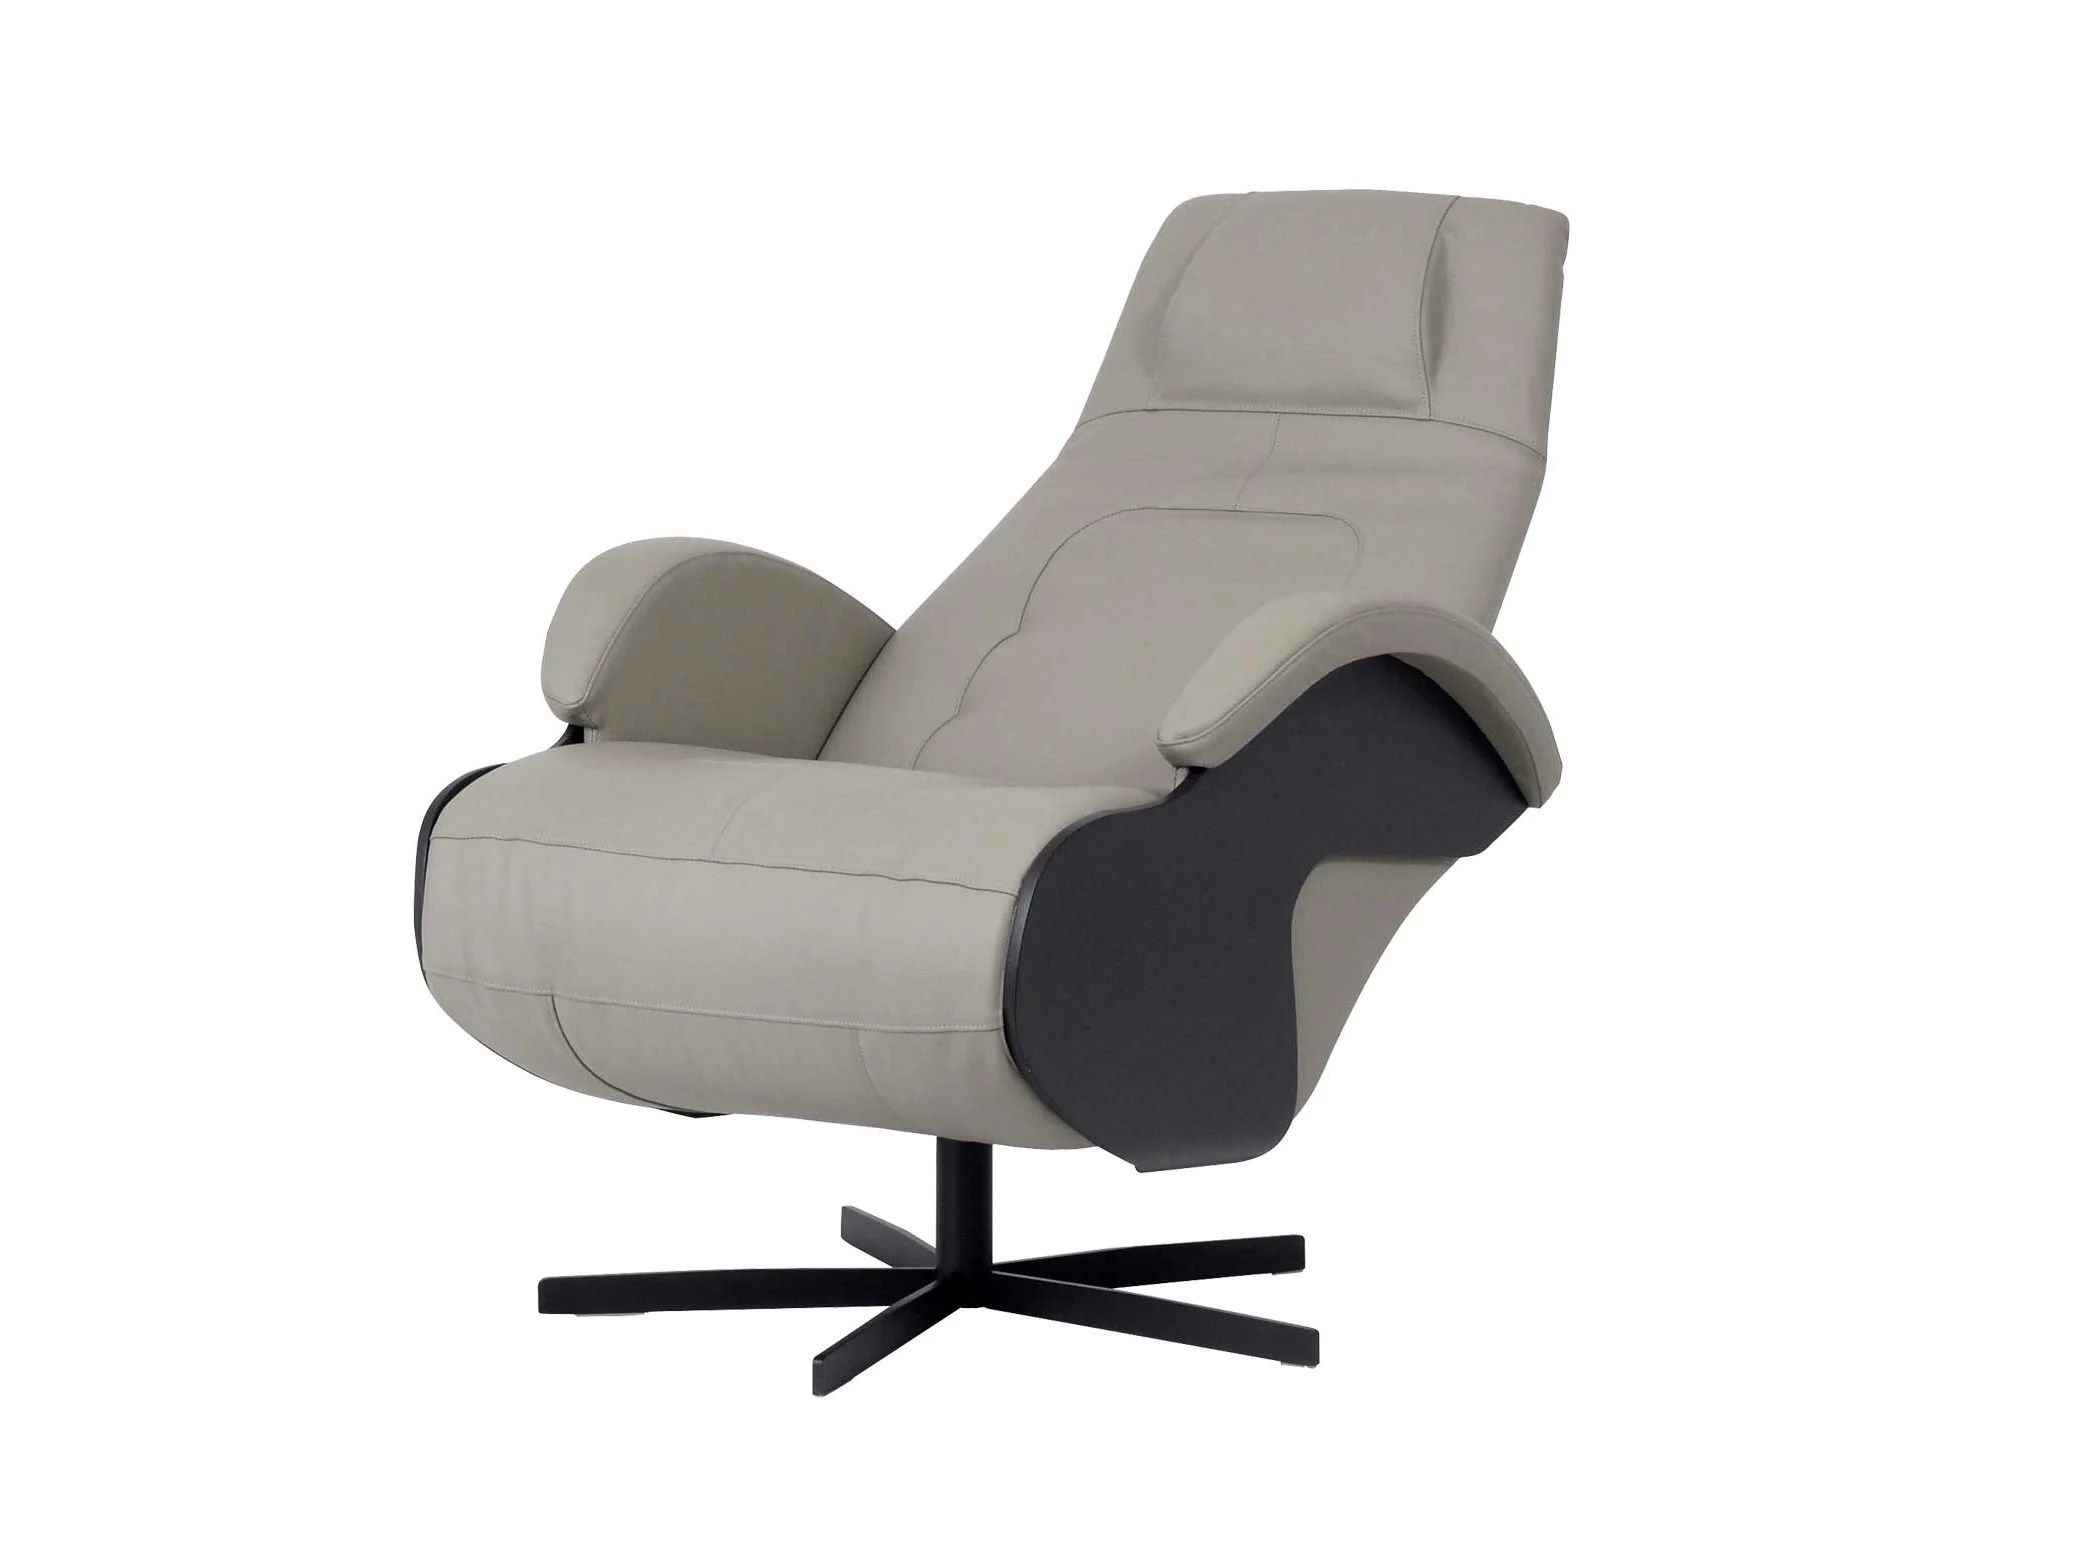 Roche Bobois Fauteuil Relax Recliner Armchair With Motorised Functions First Class Les